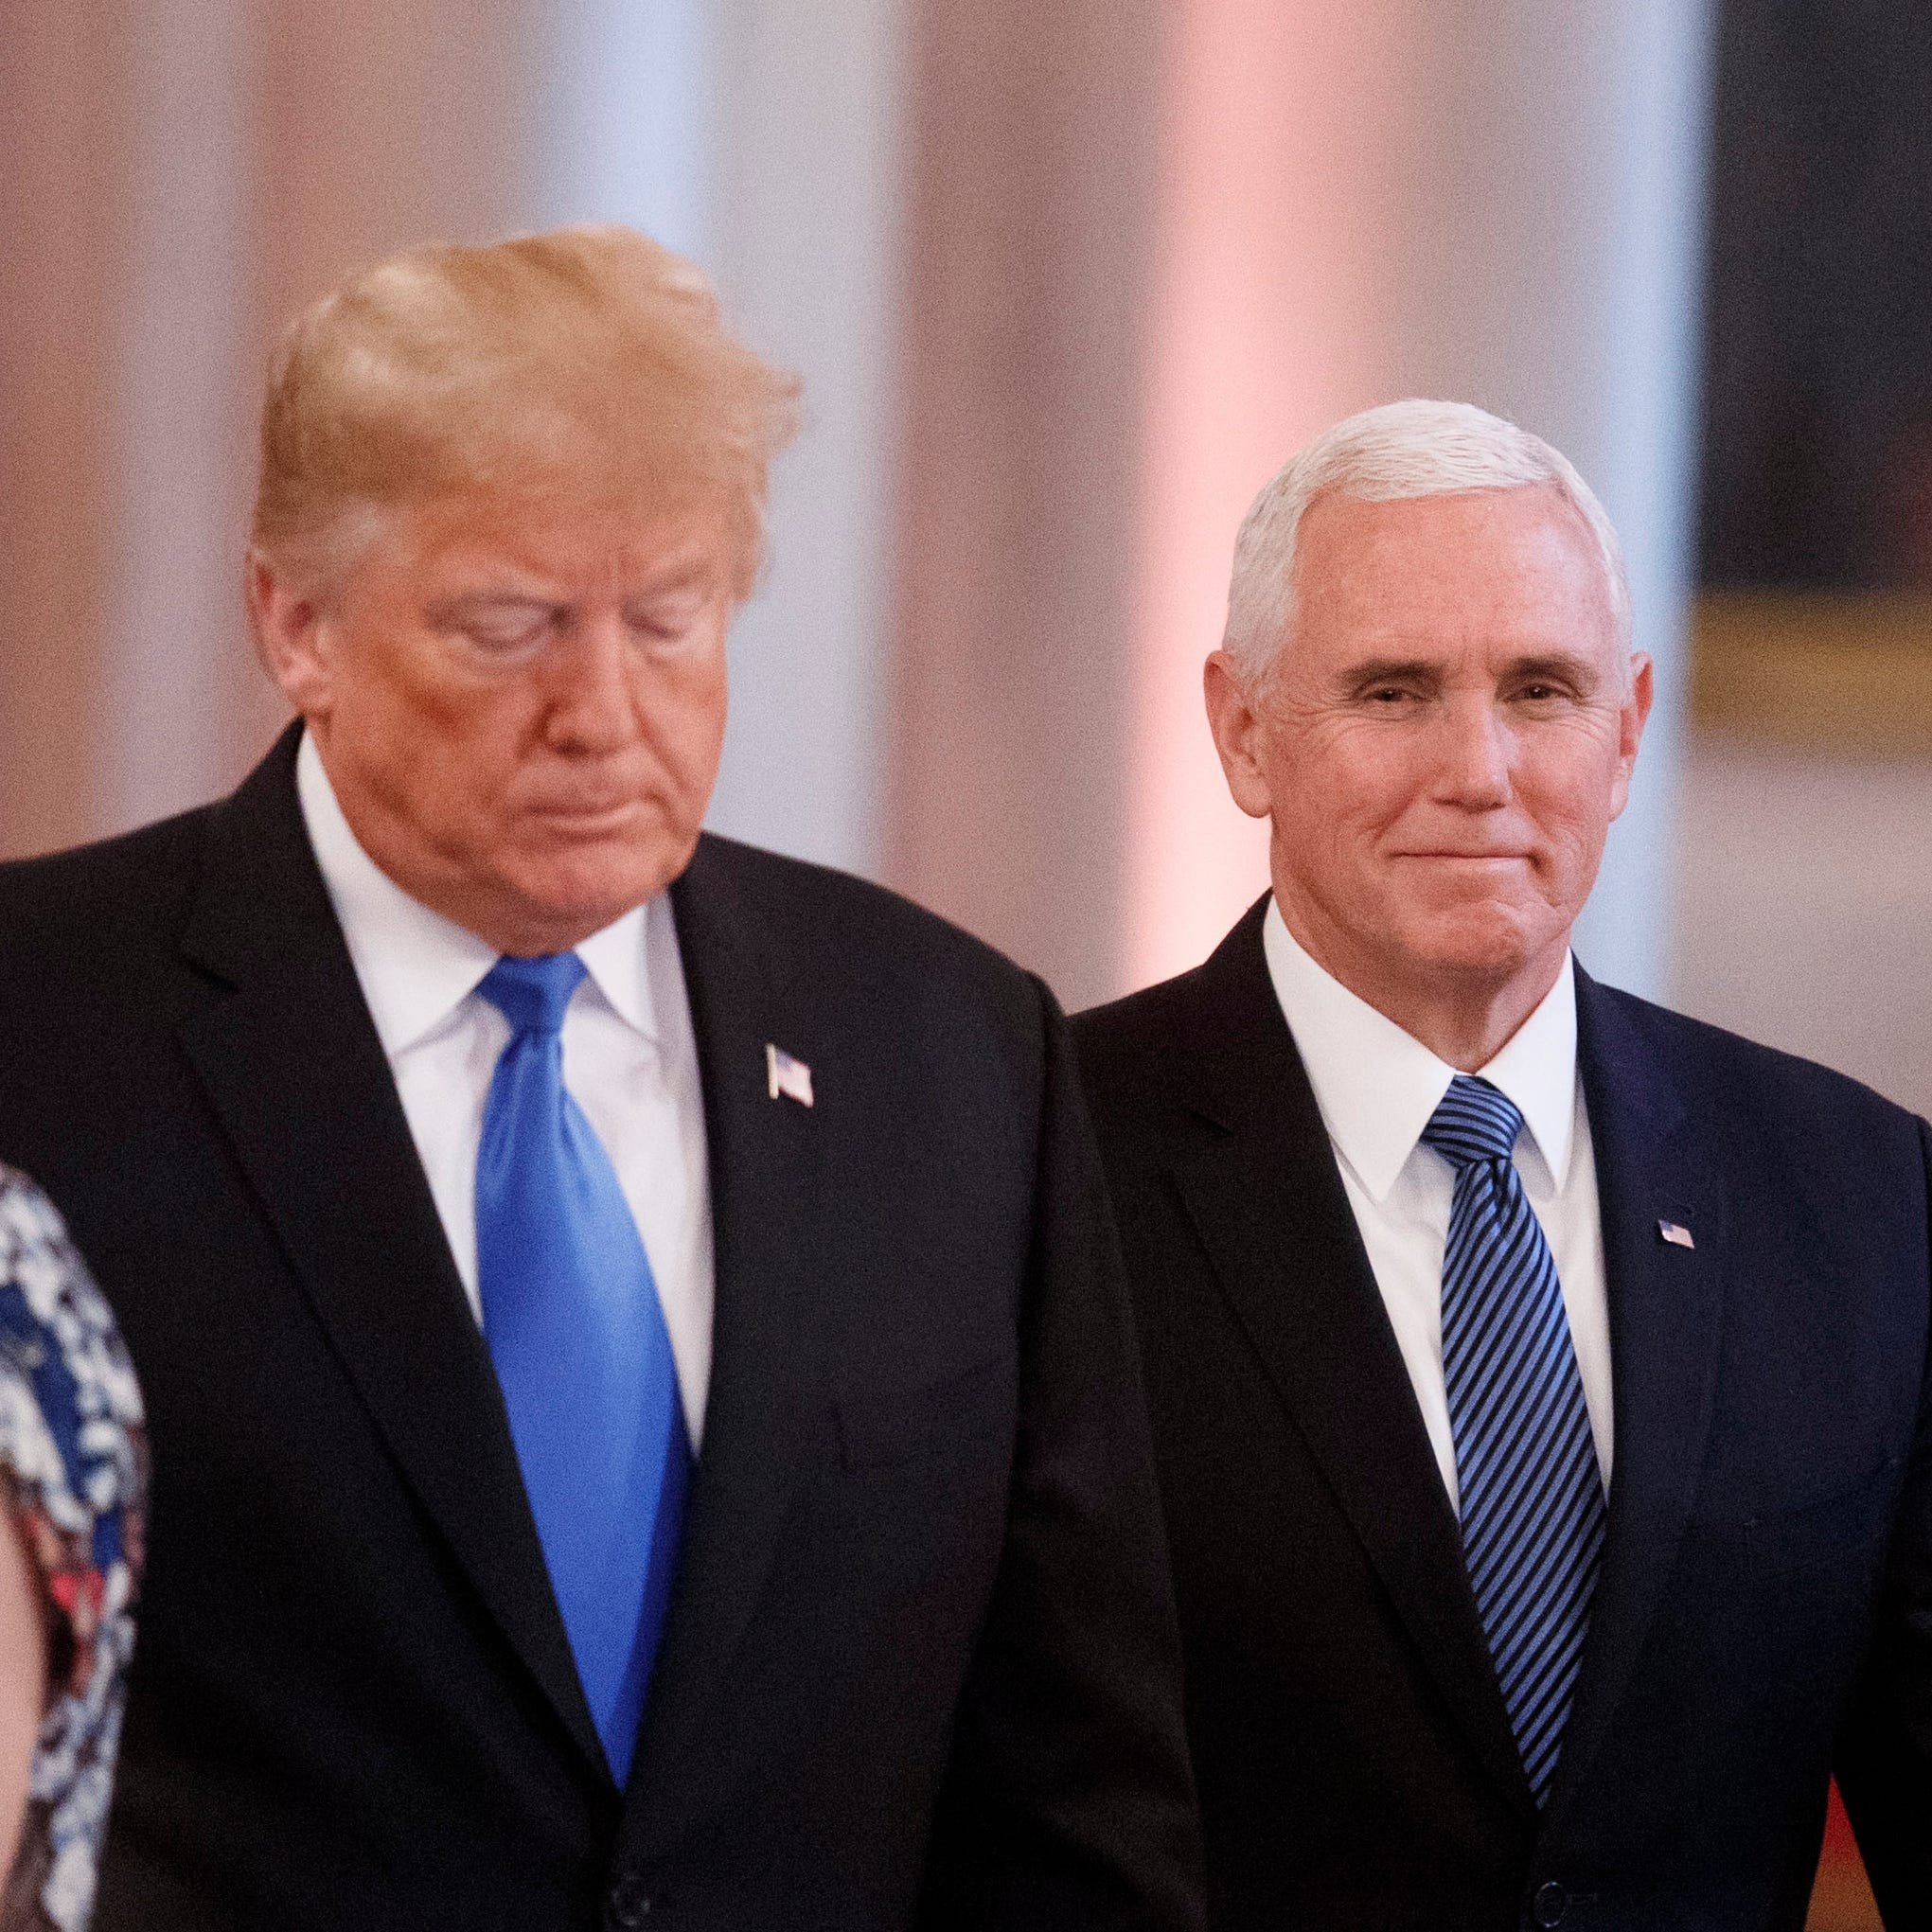 US President Donald J. Trump with Vice President Mike Pence arrives for a press conference in the East Room of the White House in Washington, DC, USA, 07 November 2018.